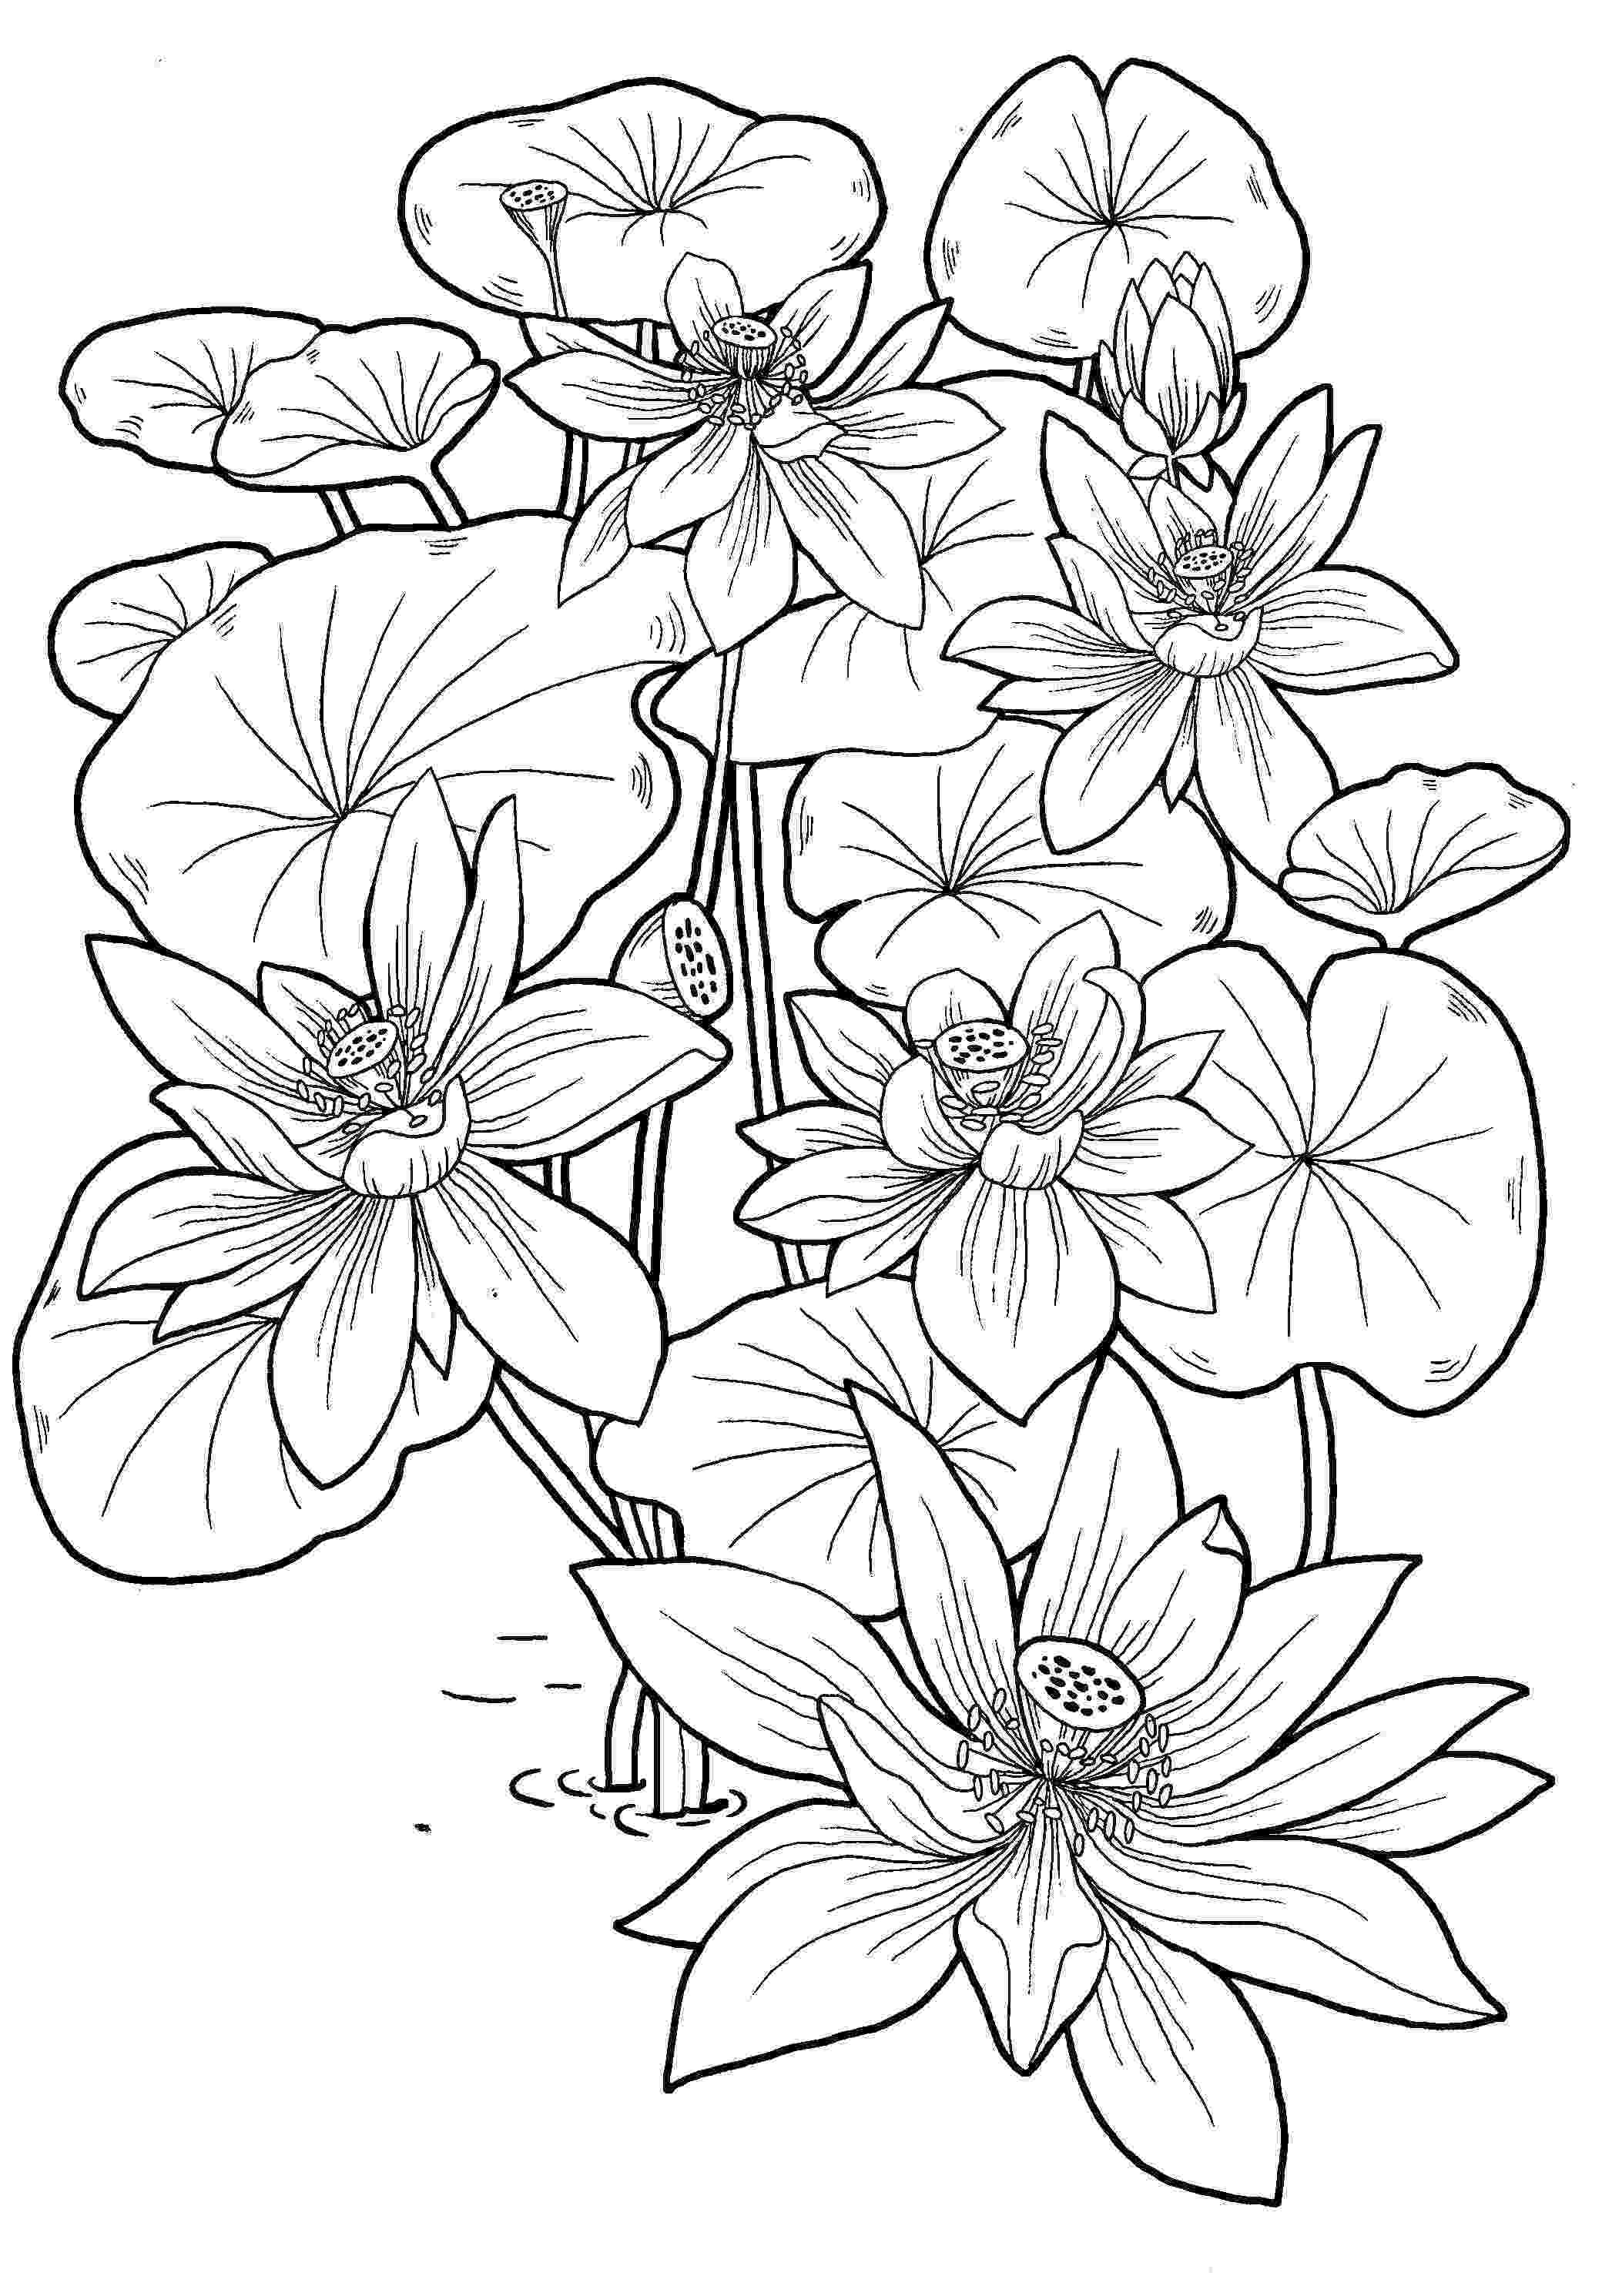 free colouring pages for 10 year olds 4 year old drawing at getdrawingscom free for personal free year for pages colouring olds 10